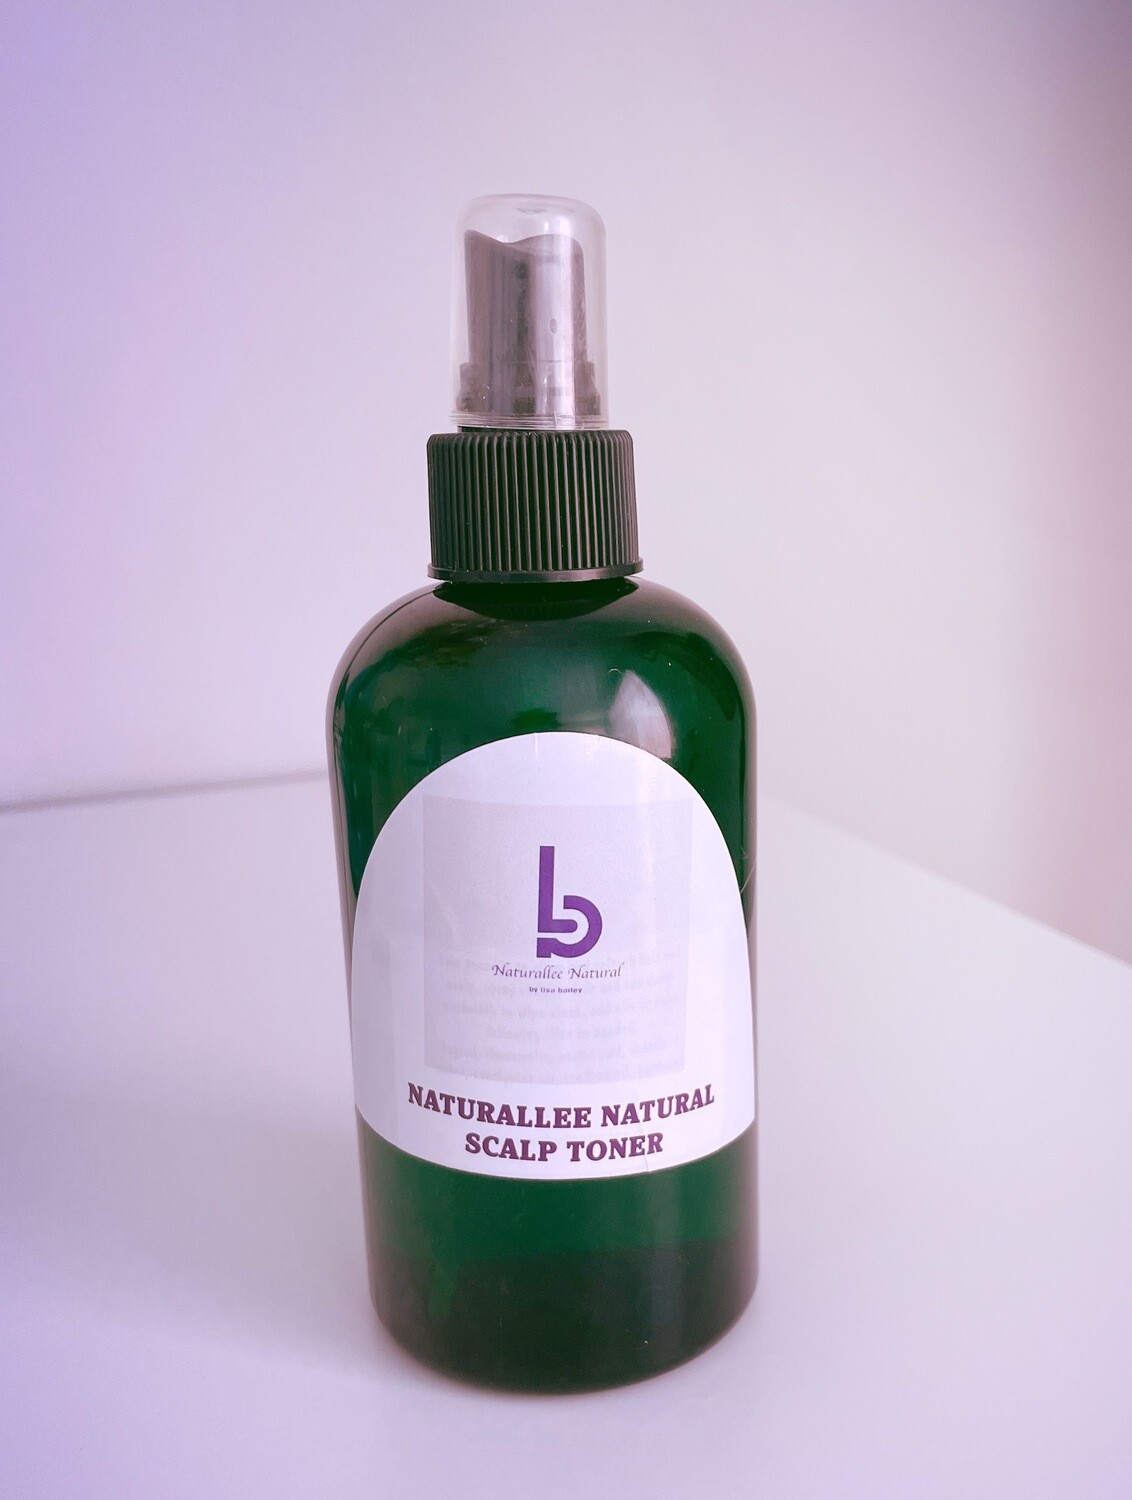 Cleanser and scalp toner